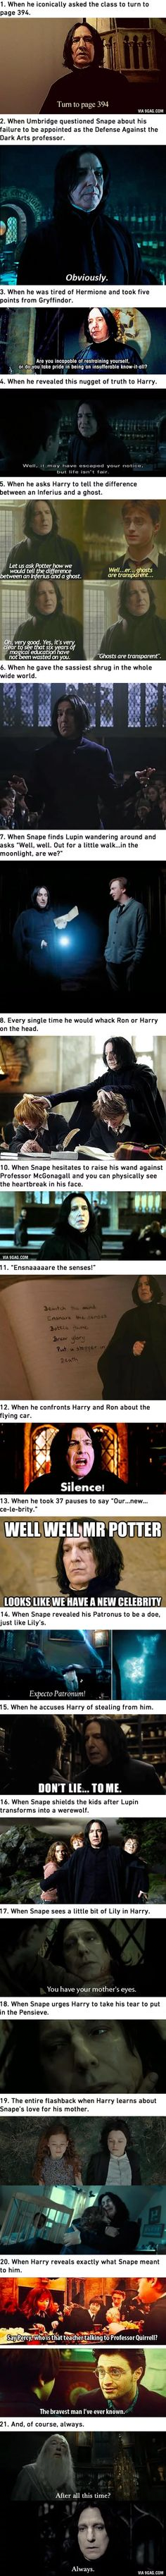 "21 Professor Snape Moments In ""Harry Potter"" That Make Us Love Him. Alan Rickman made it even more special. No one loves snape Harry Potter World, Harry Potter Thema, Mundo Harry Potter, Harry Potter Jokes, Harry Potter Universal, Harry Potter Fandom, Harry Potter Severus Snape, Harry Potter Characters, Hermione Granger"